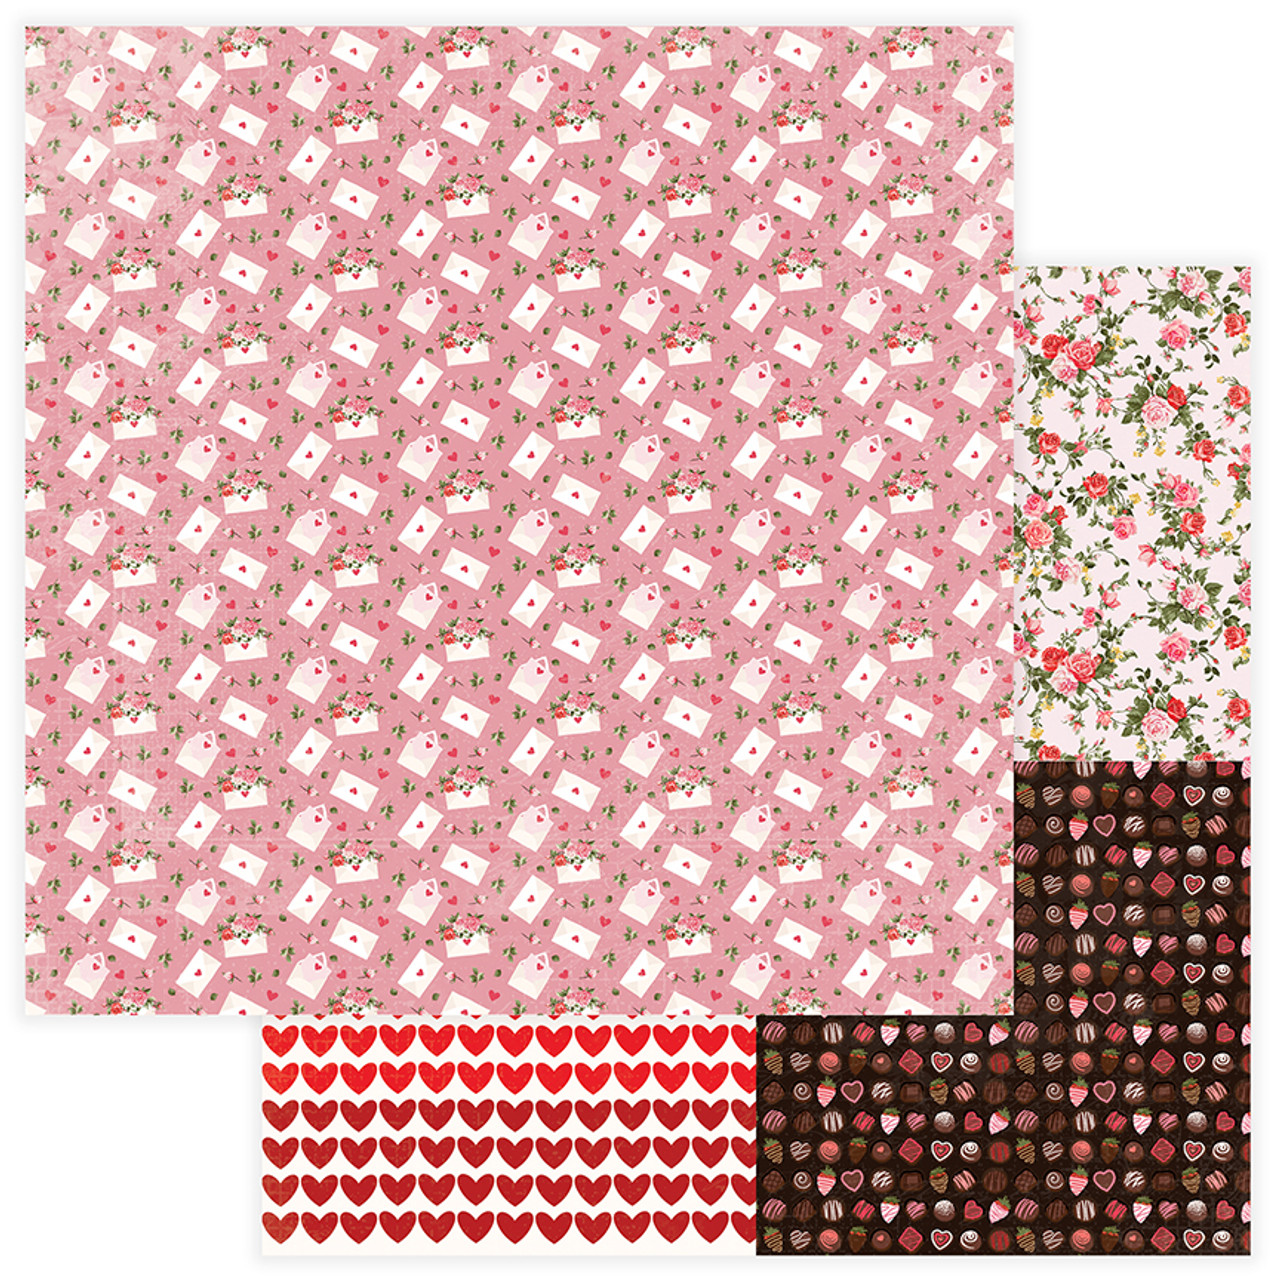 Be Mine Collection Love Letter 12 x 12 Double-Sided Scrapbook Paper by Photo Play Paper